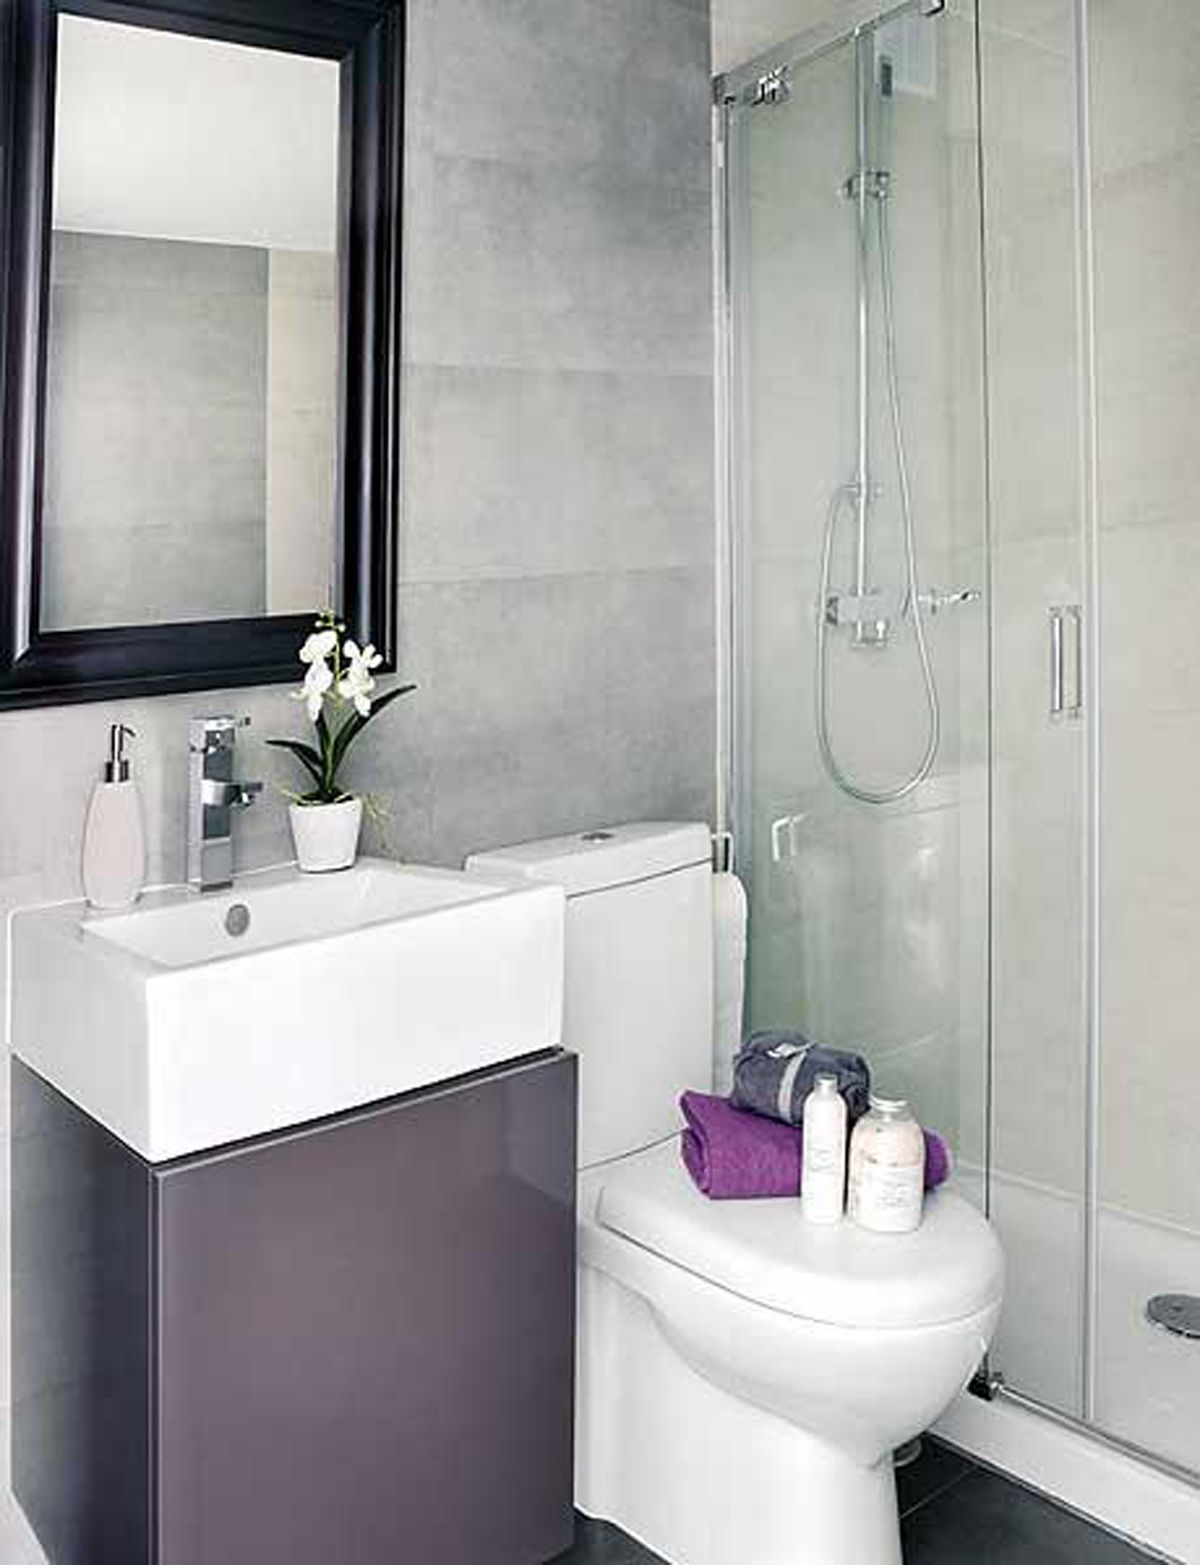 Bathroom Interior Design Ideas Intrinsic Interior Design Applied In Small Apartment Architecture